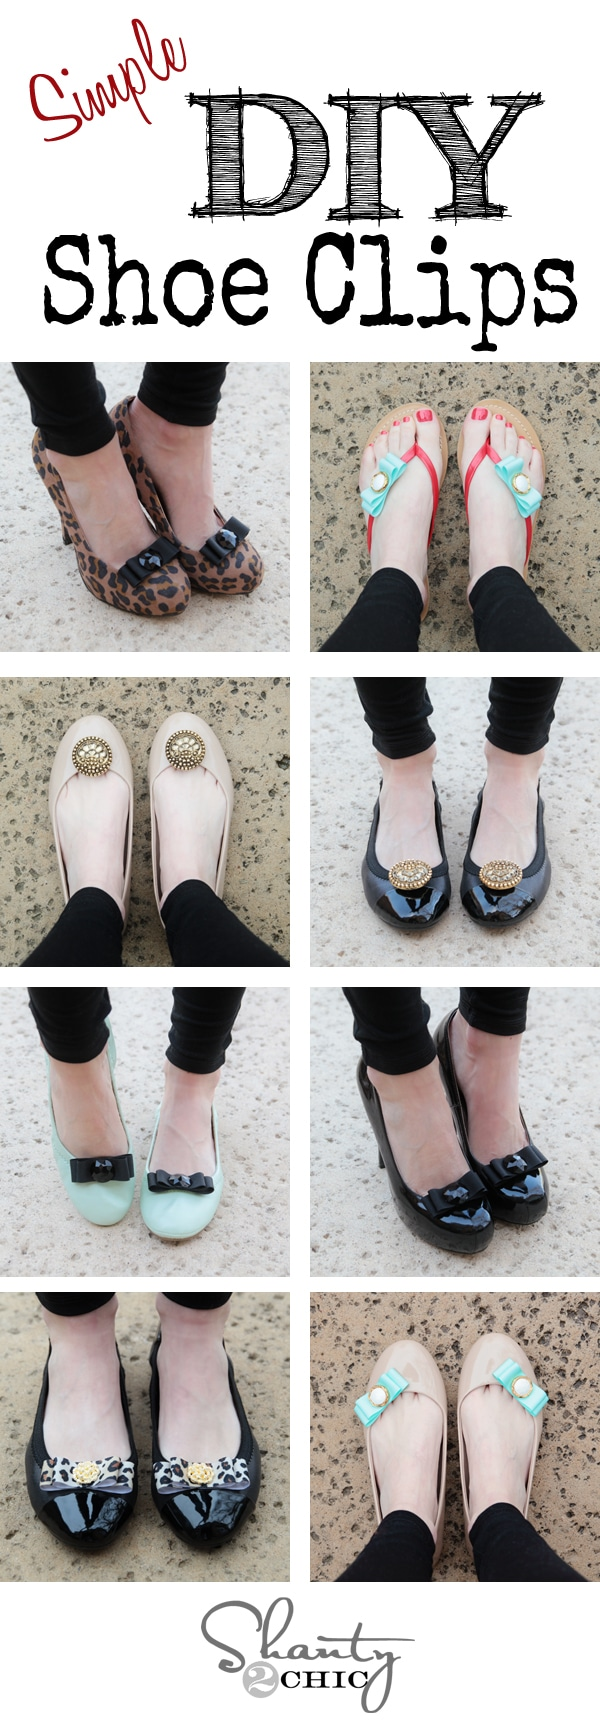 Create the Perfect Shoes for Any Occasion with These Great DIY Shoe Clips